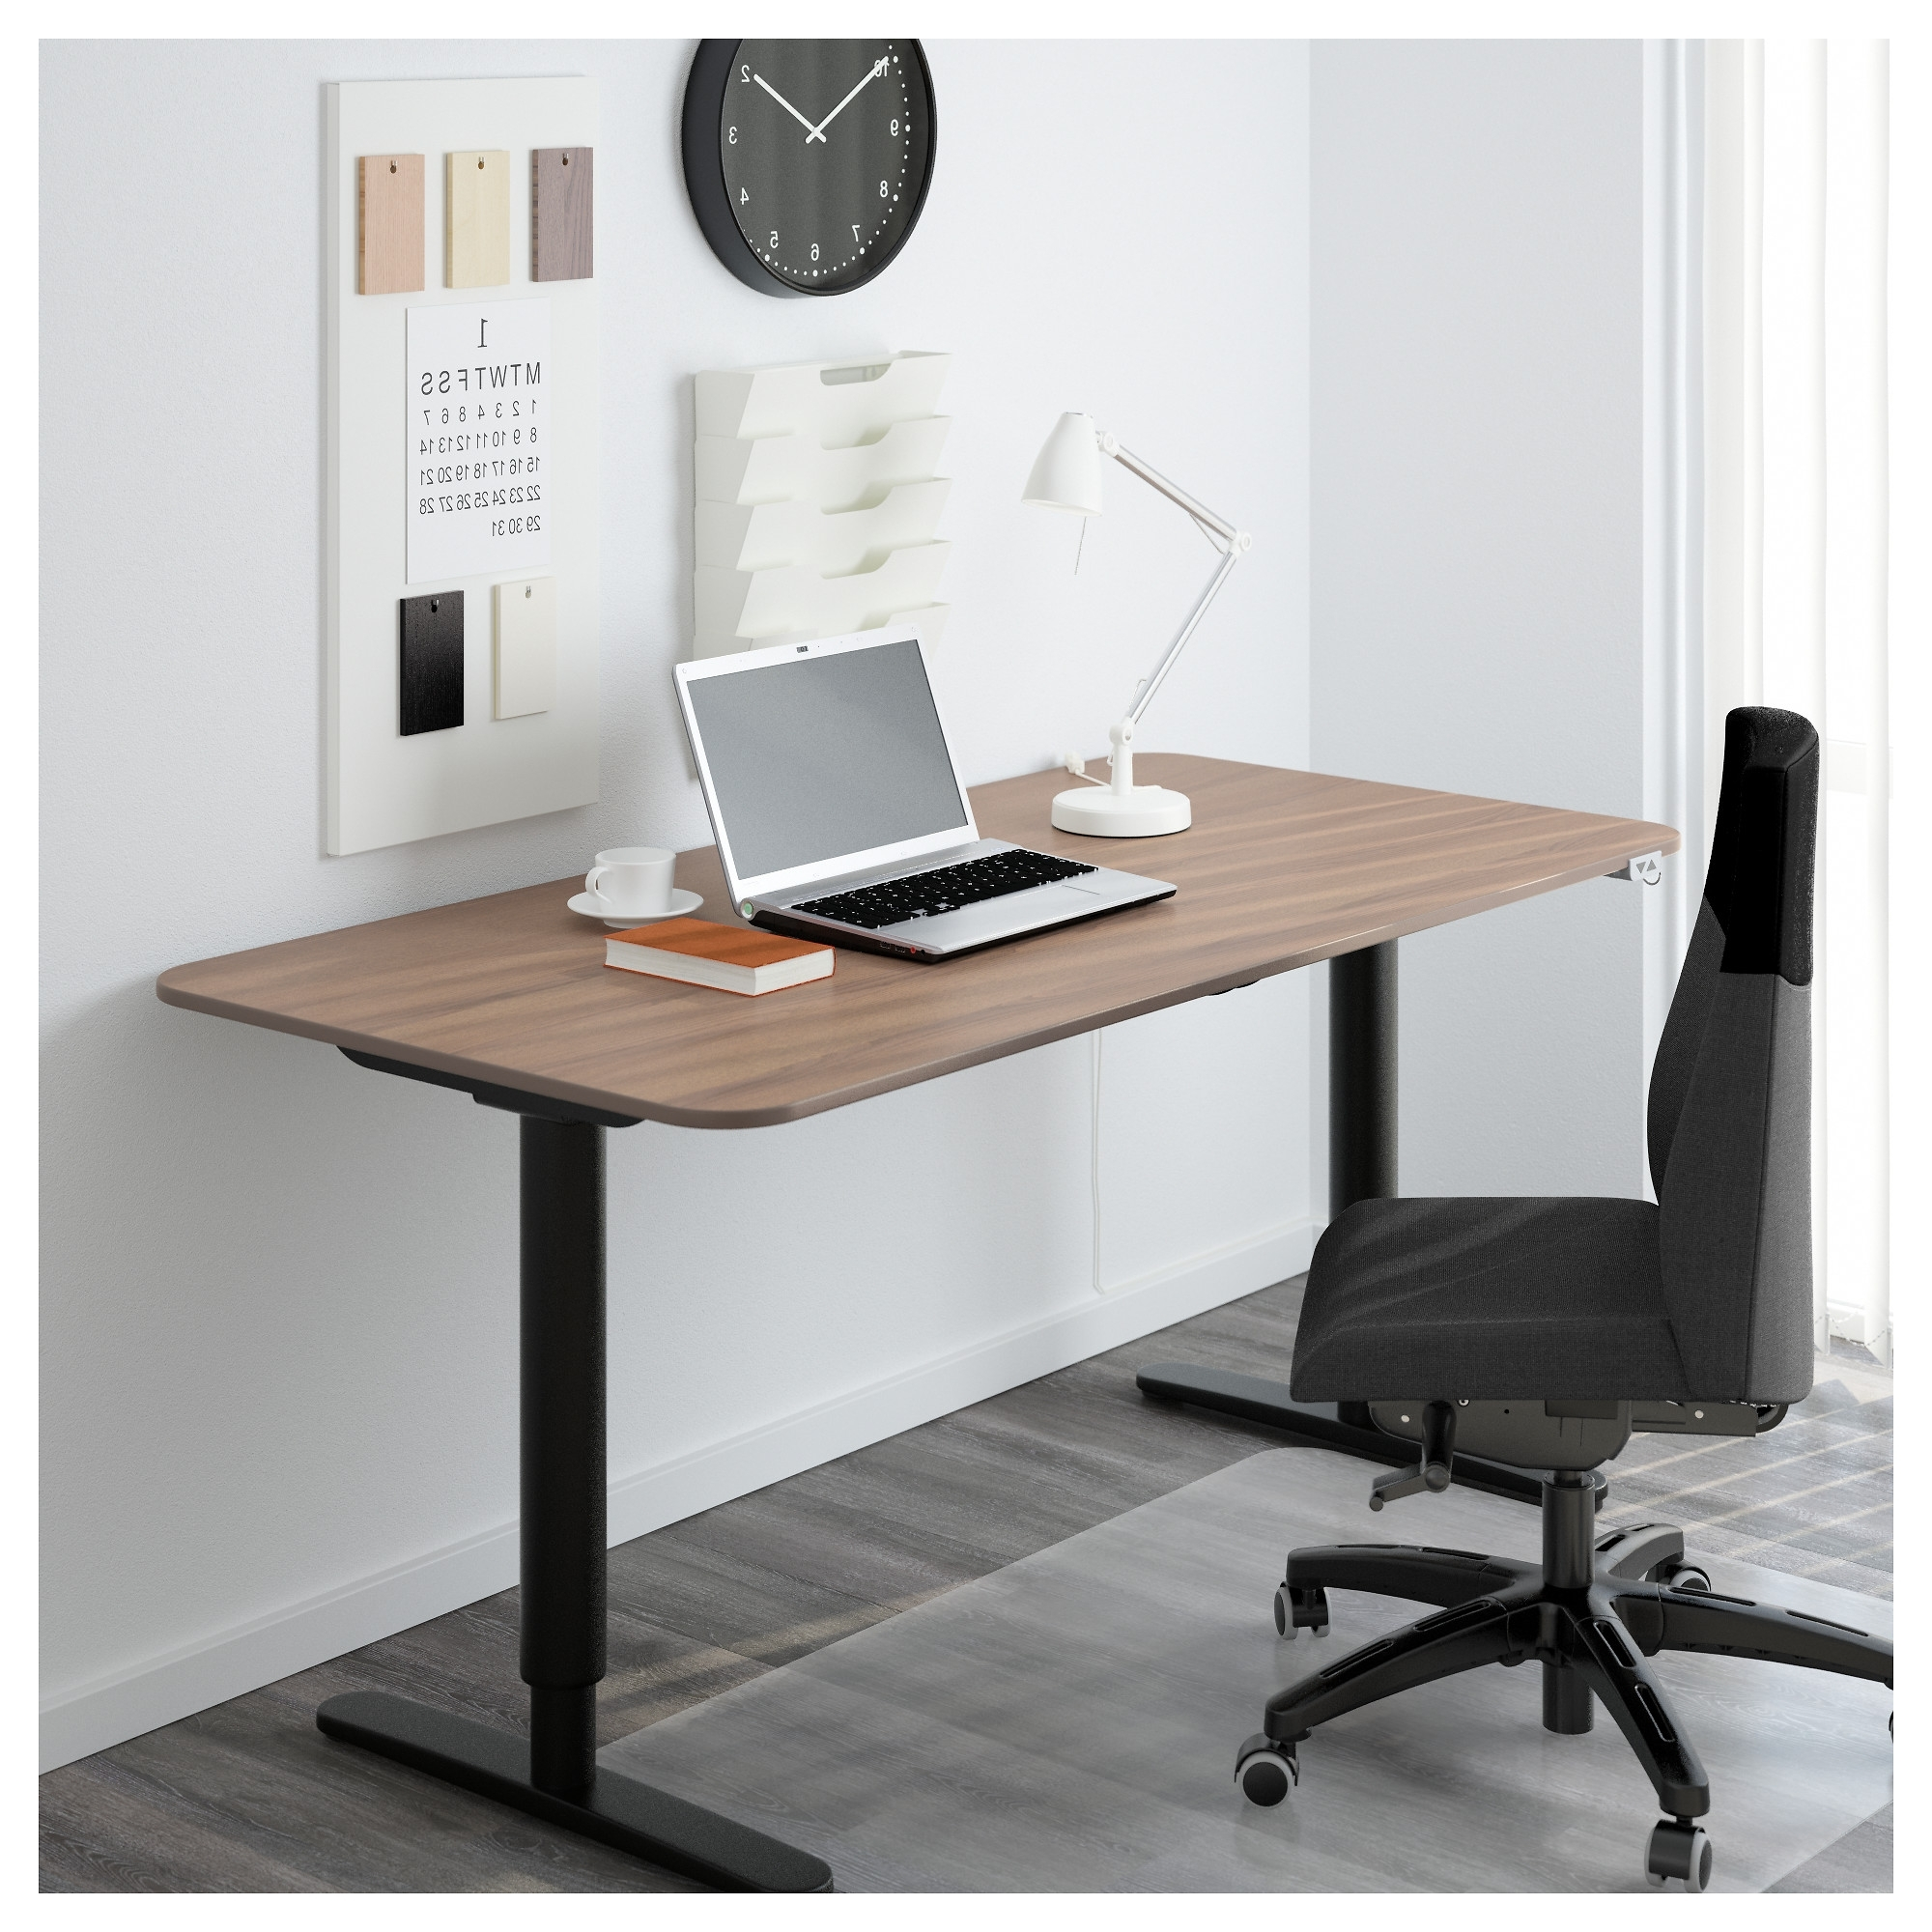 Latest Computer Desks At Ikea Regarding Bekant Desk Sit/stand – Black Brown/white – Ikea (View 13 of 20)